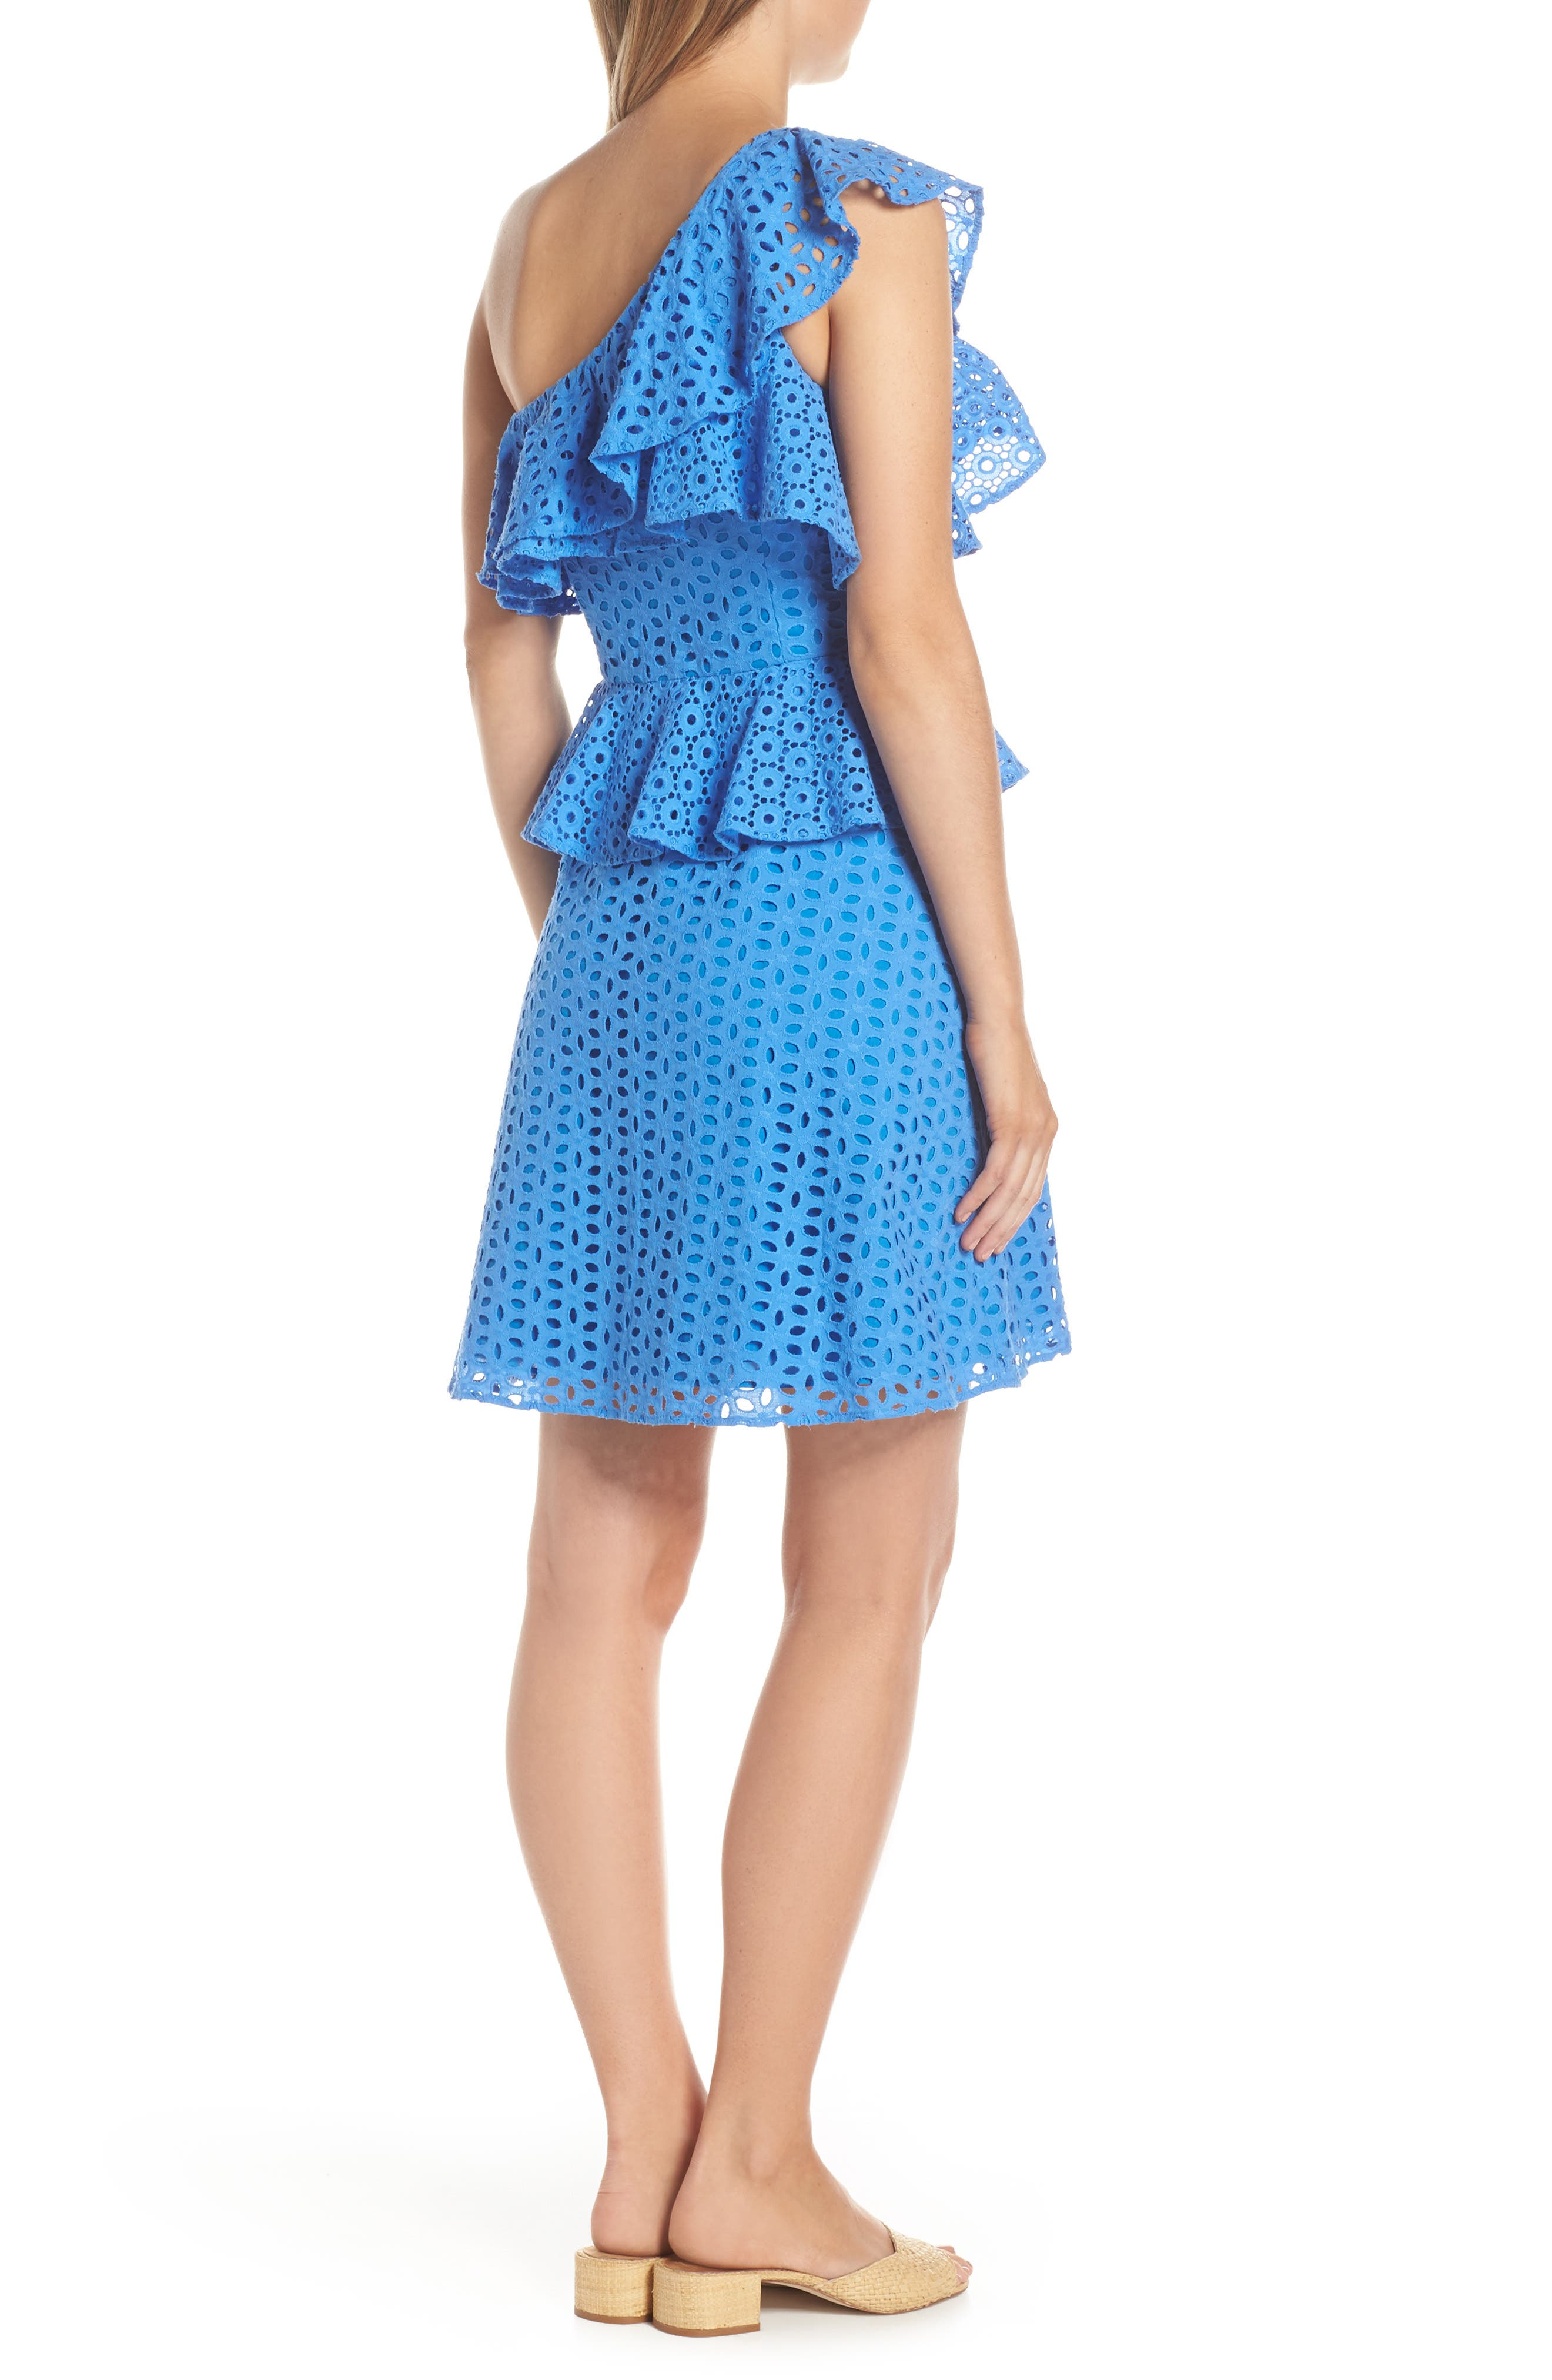 LILLY PULITZER<SUP>®</SUP>, Josey Eyelet One-Shoulder Dress, Alternate thumbnail 2, color, COASTAL BLUE OVAL FLOWER